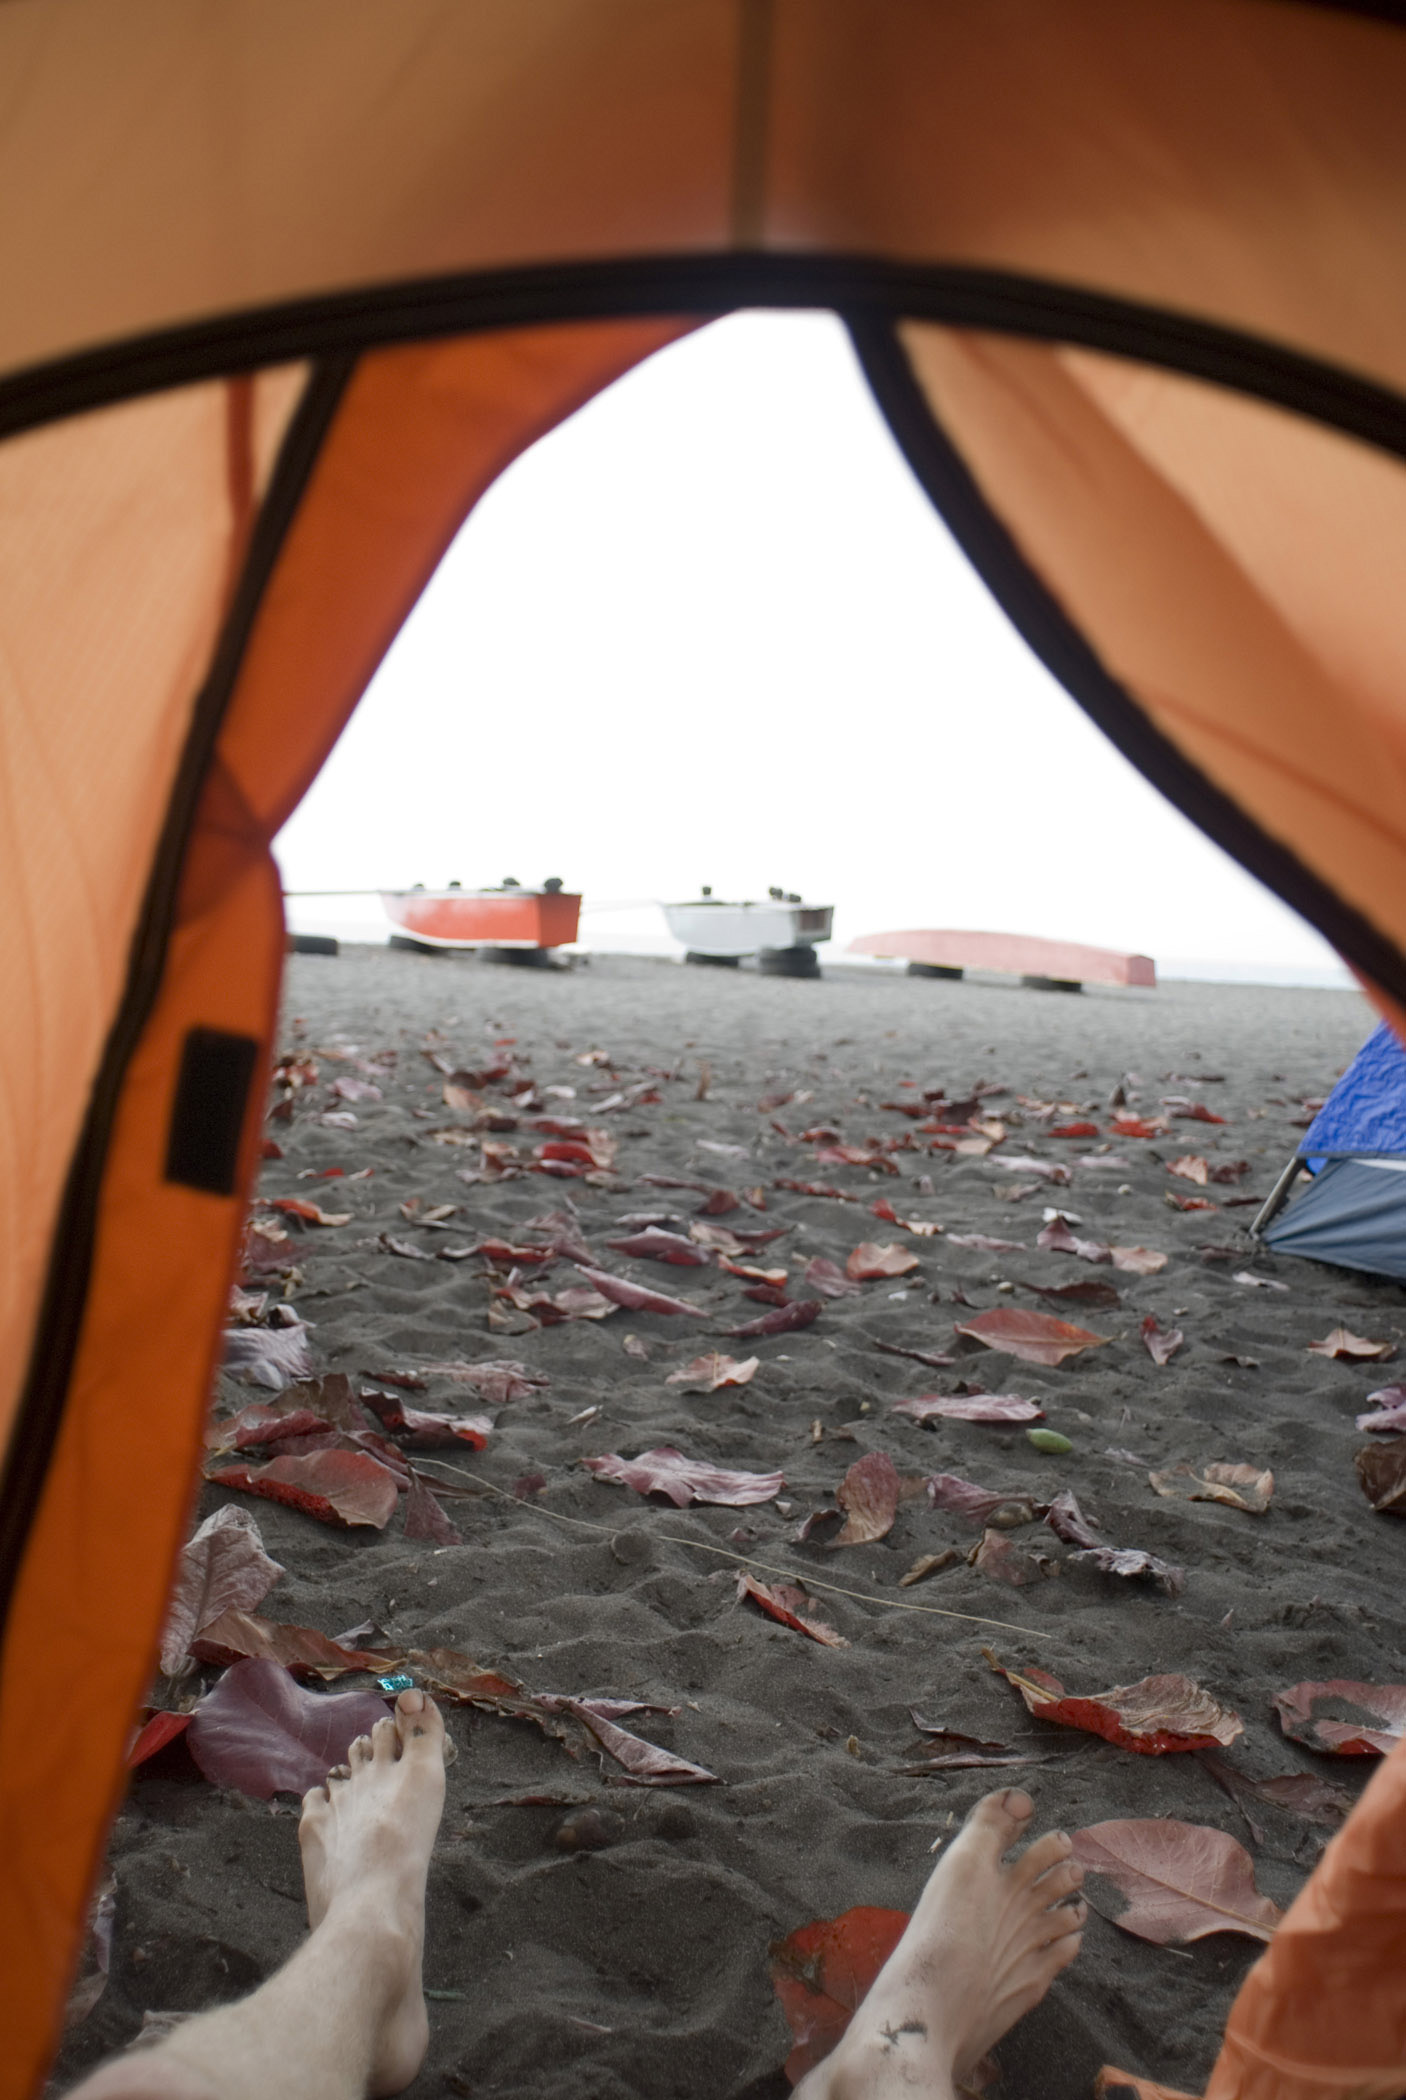 Big Island camping with a view of a mans feet in the opening of an orange tent with a background of a volcanic beach and canoes